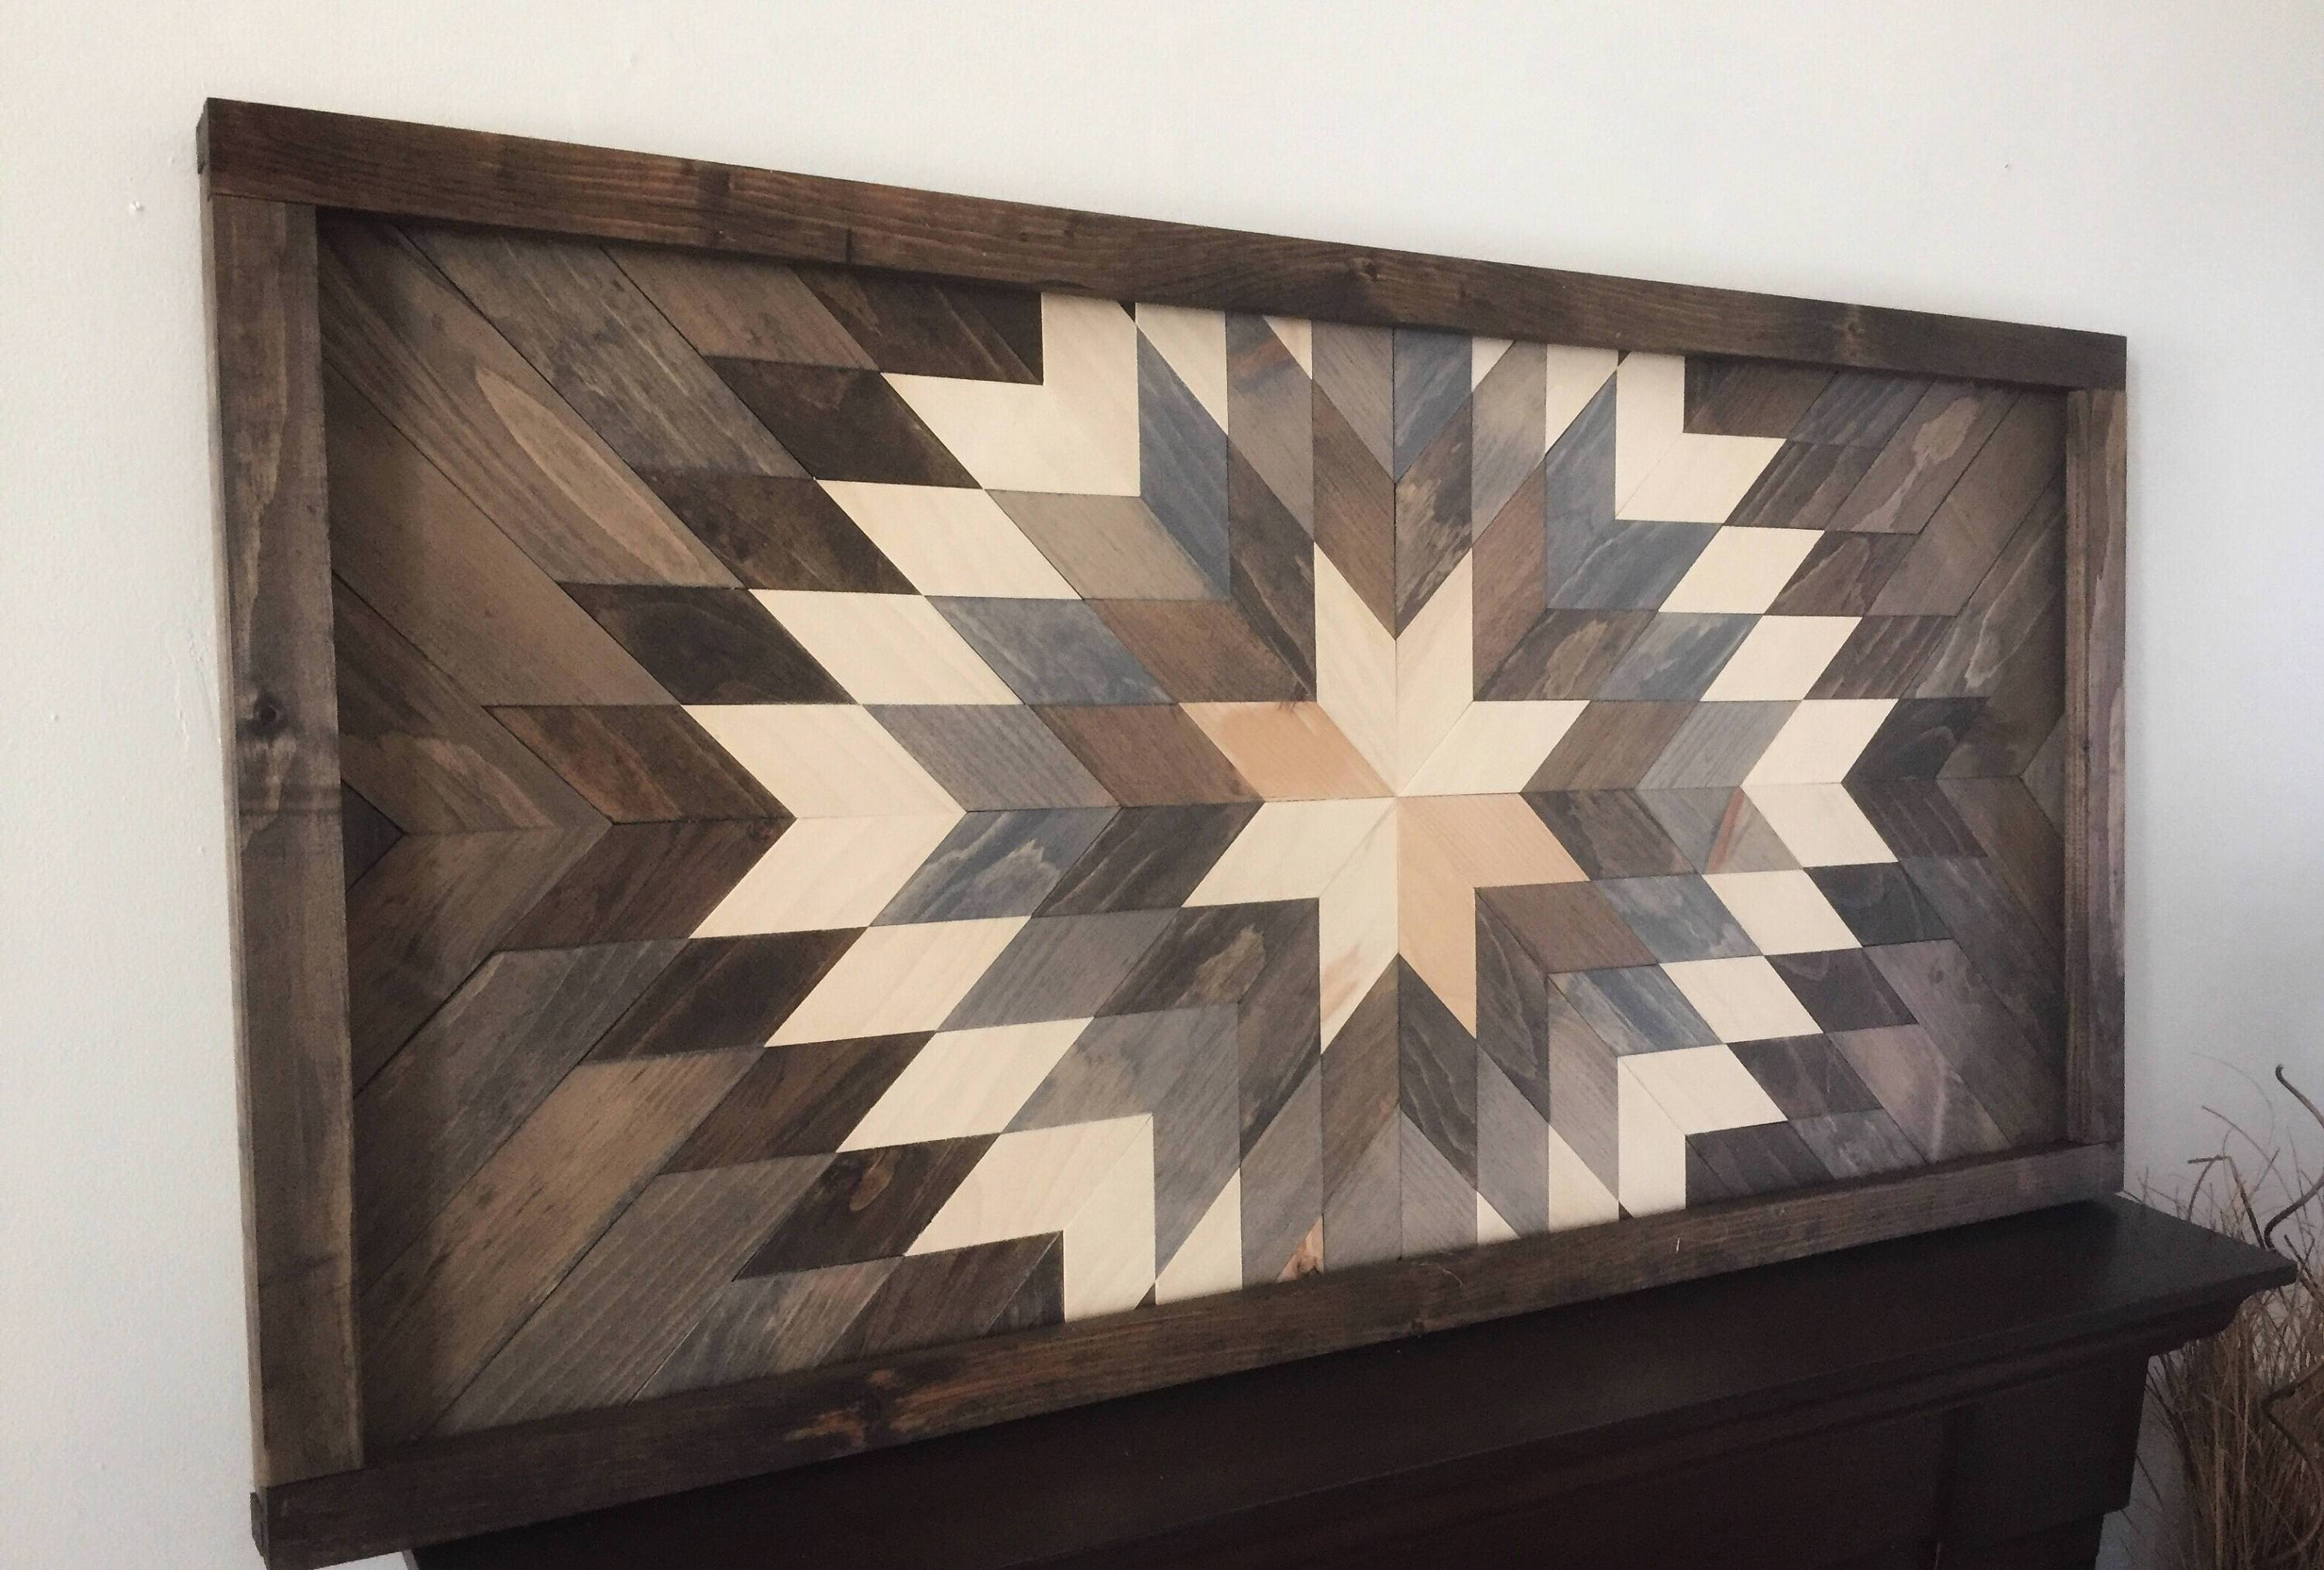 Reclaimed Wood Wall Art – Sunburst In Gray – Dark Frame Pertaining To Most Up To Date Dark Wood Wall Art (View 6 of 15)